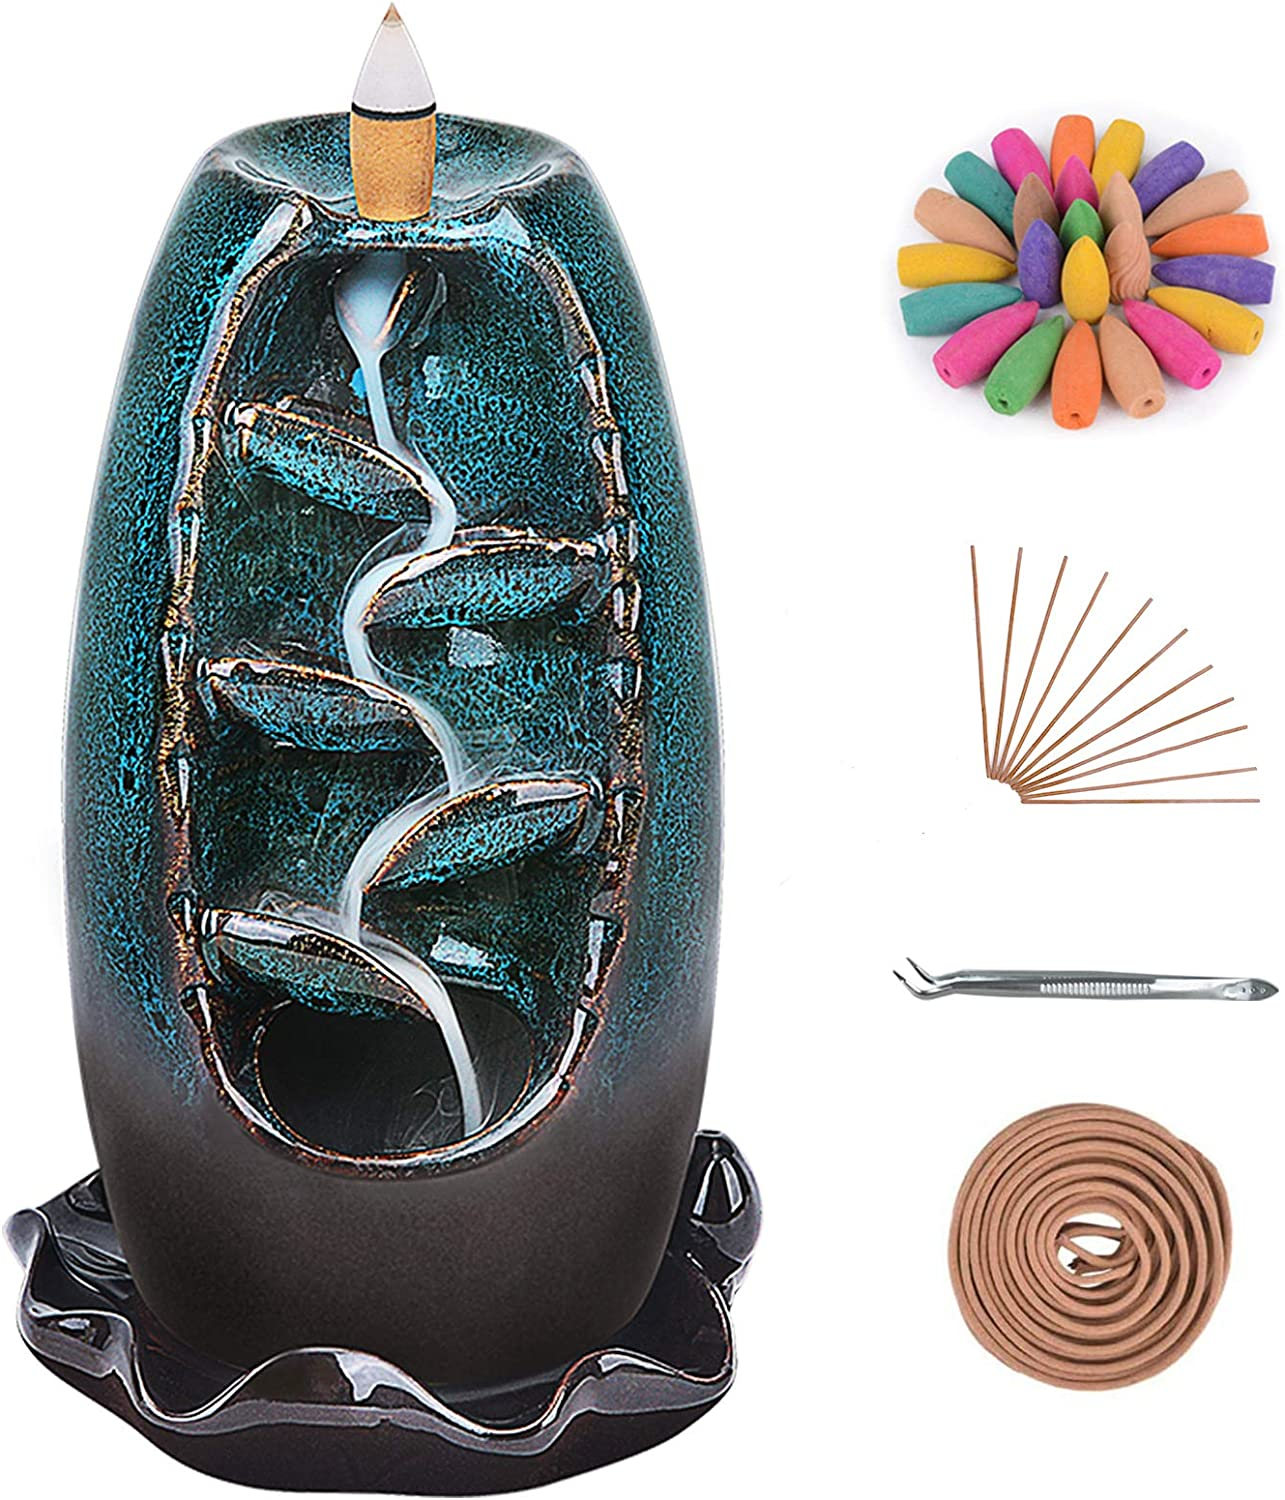 Ronlap Backflow Incense Burner, 5 in 1 Ceramic Waterfall Smoke Incense Holder with 120 Upgraded Incense Cones+30 Incense Sticks+10 Coil Incense, for Aromatherapy Meditation Home Decorations, Blue